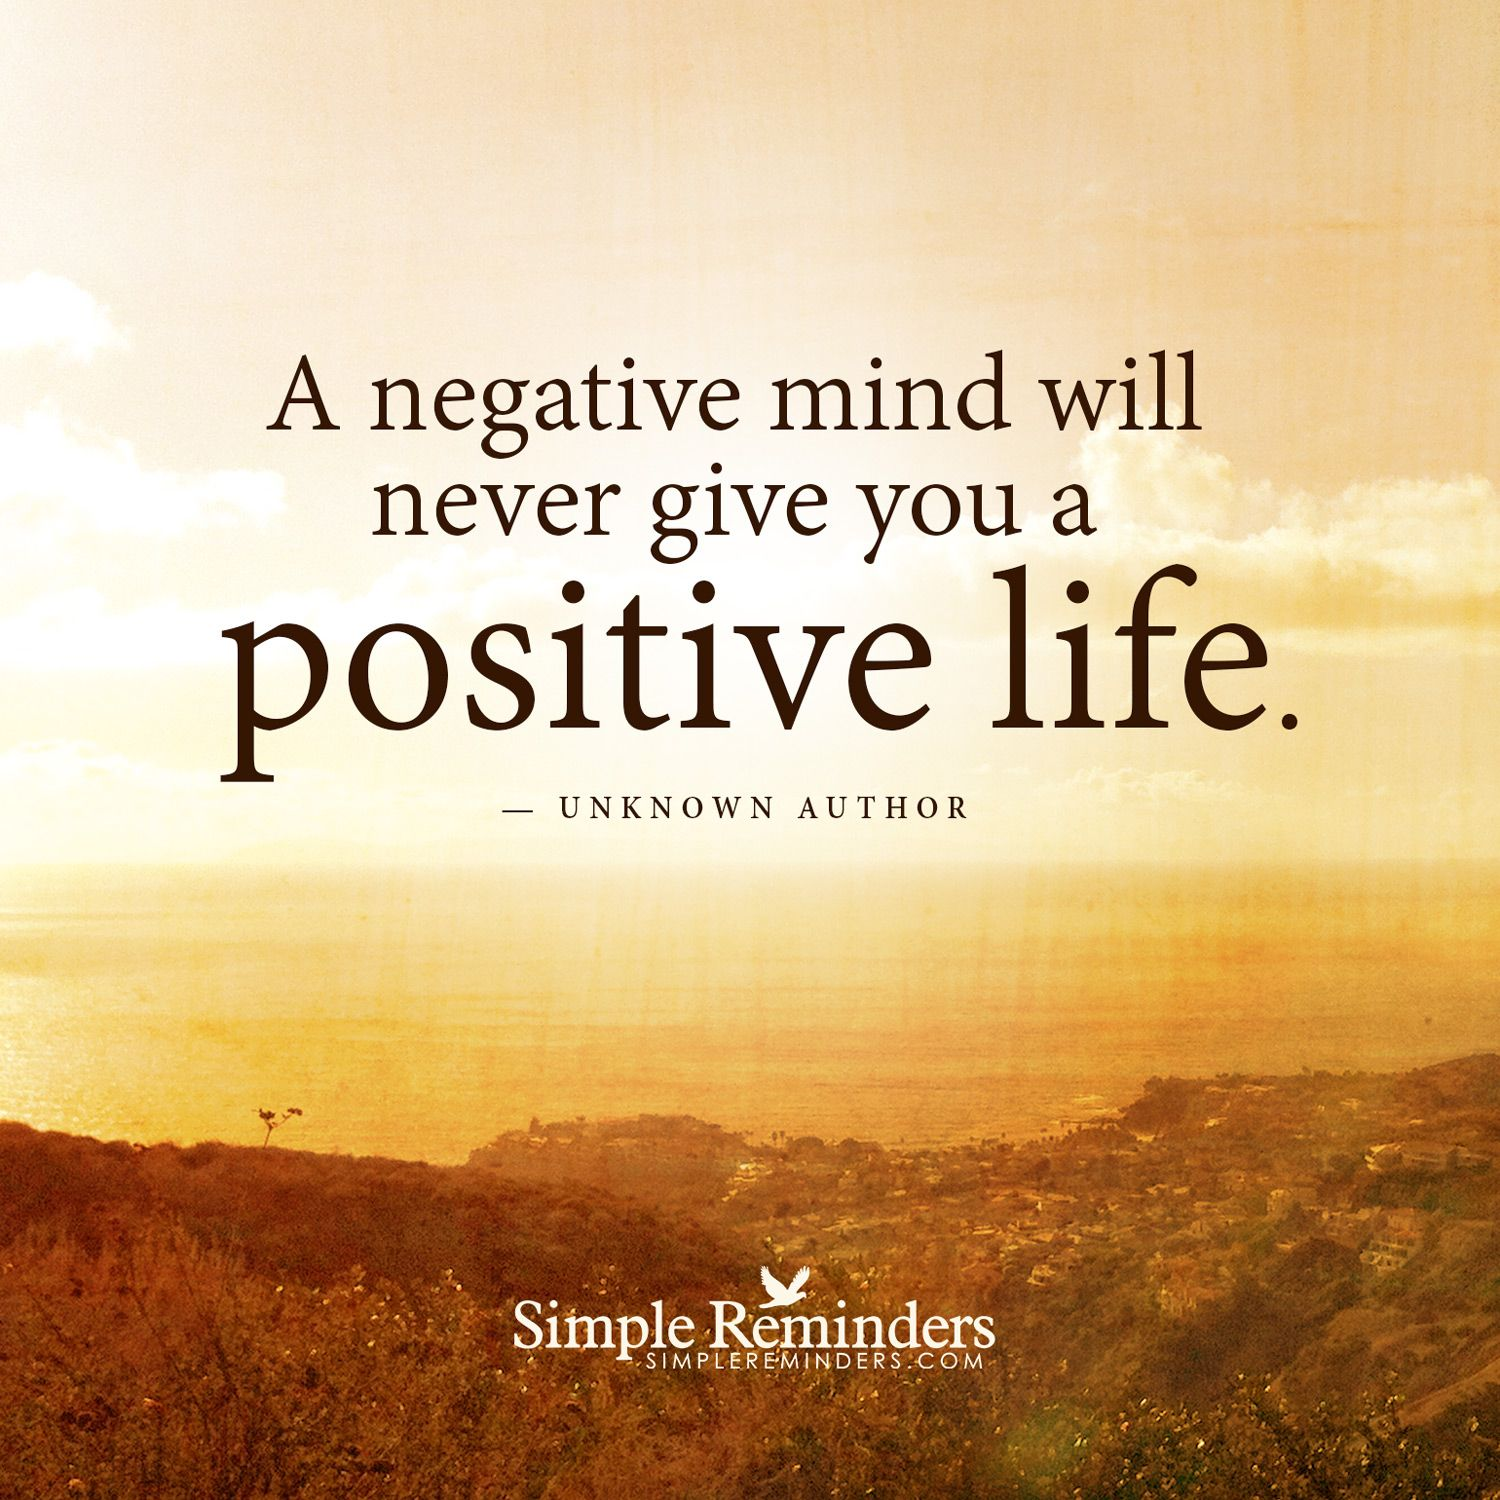 Inspirational Quotes On Life: A Negative Mind Will Never Give You A Positive Life